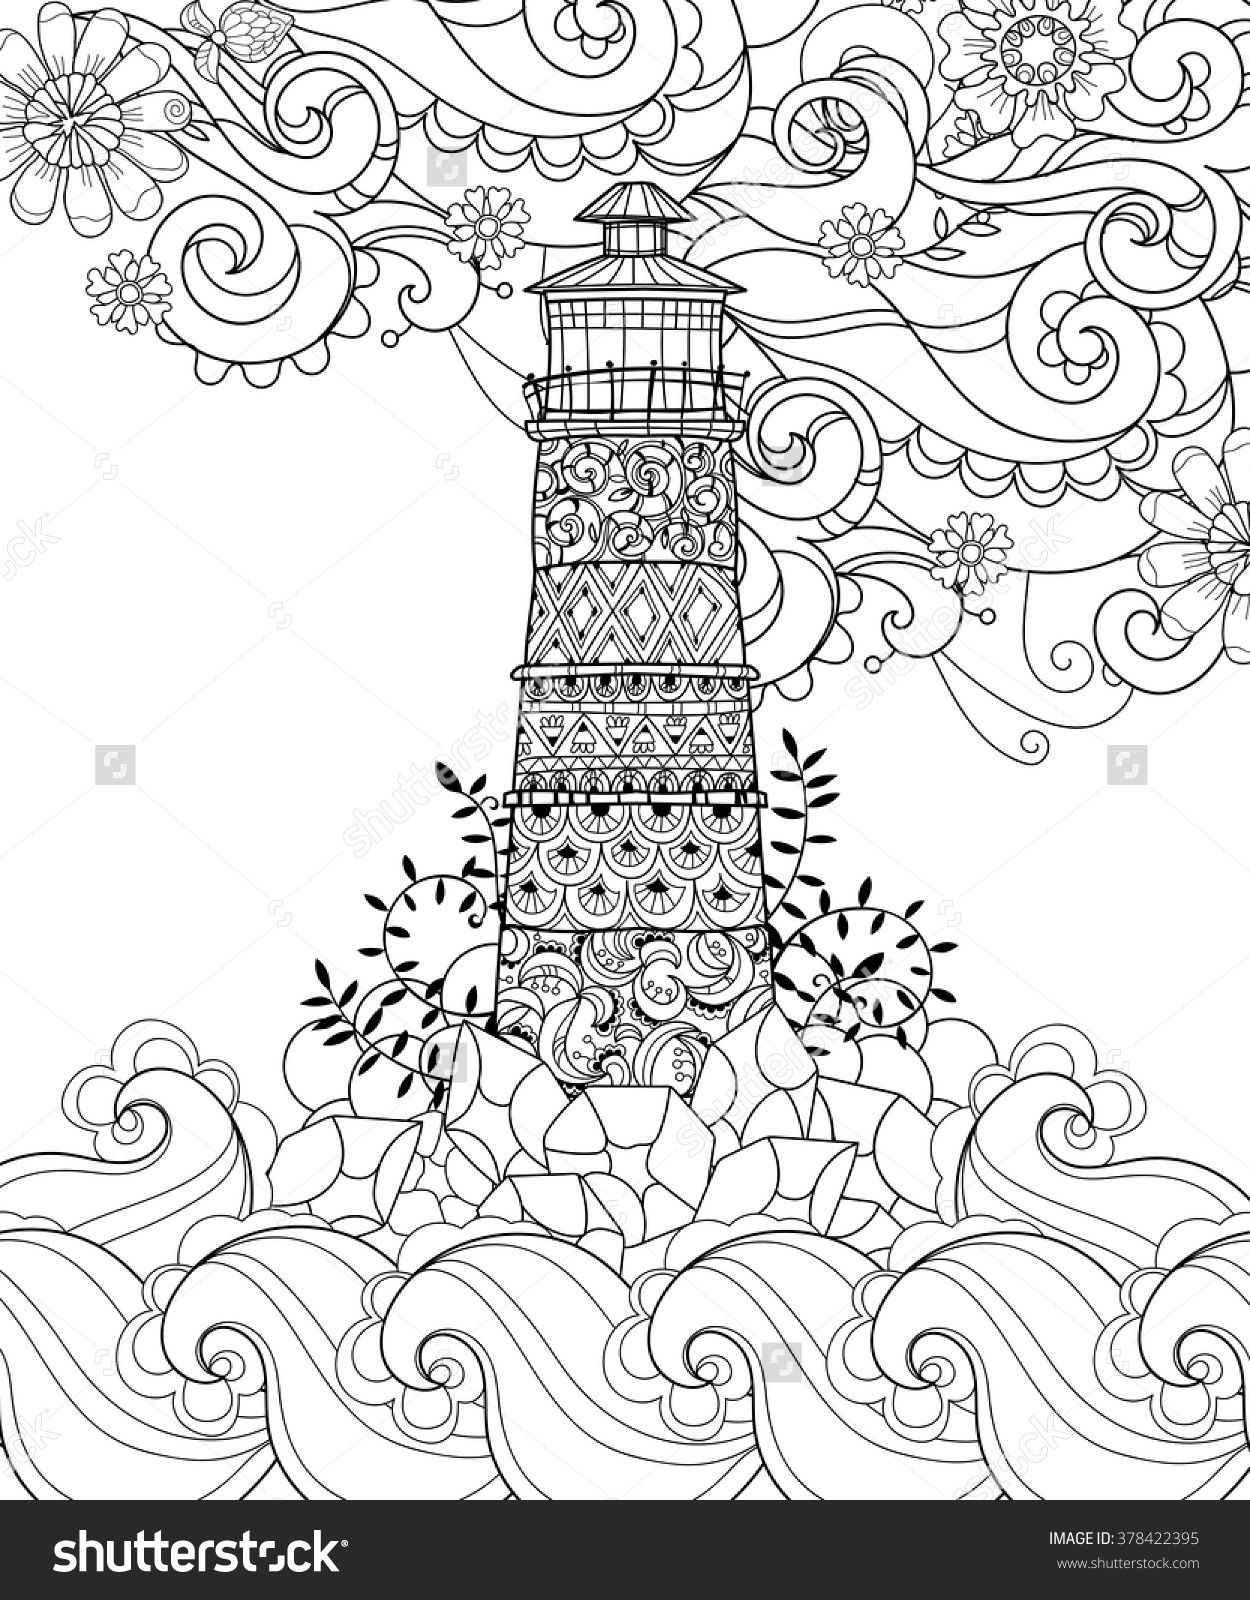 scandinavian flags coloring scandinavian coloring pages at getcoloringscom free coloring flags scandinavian